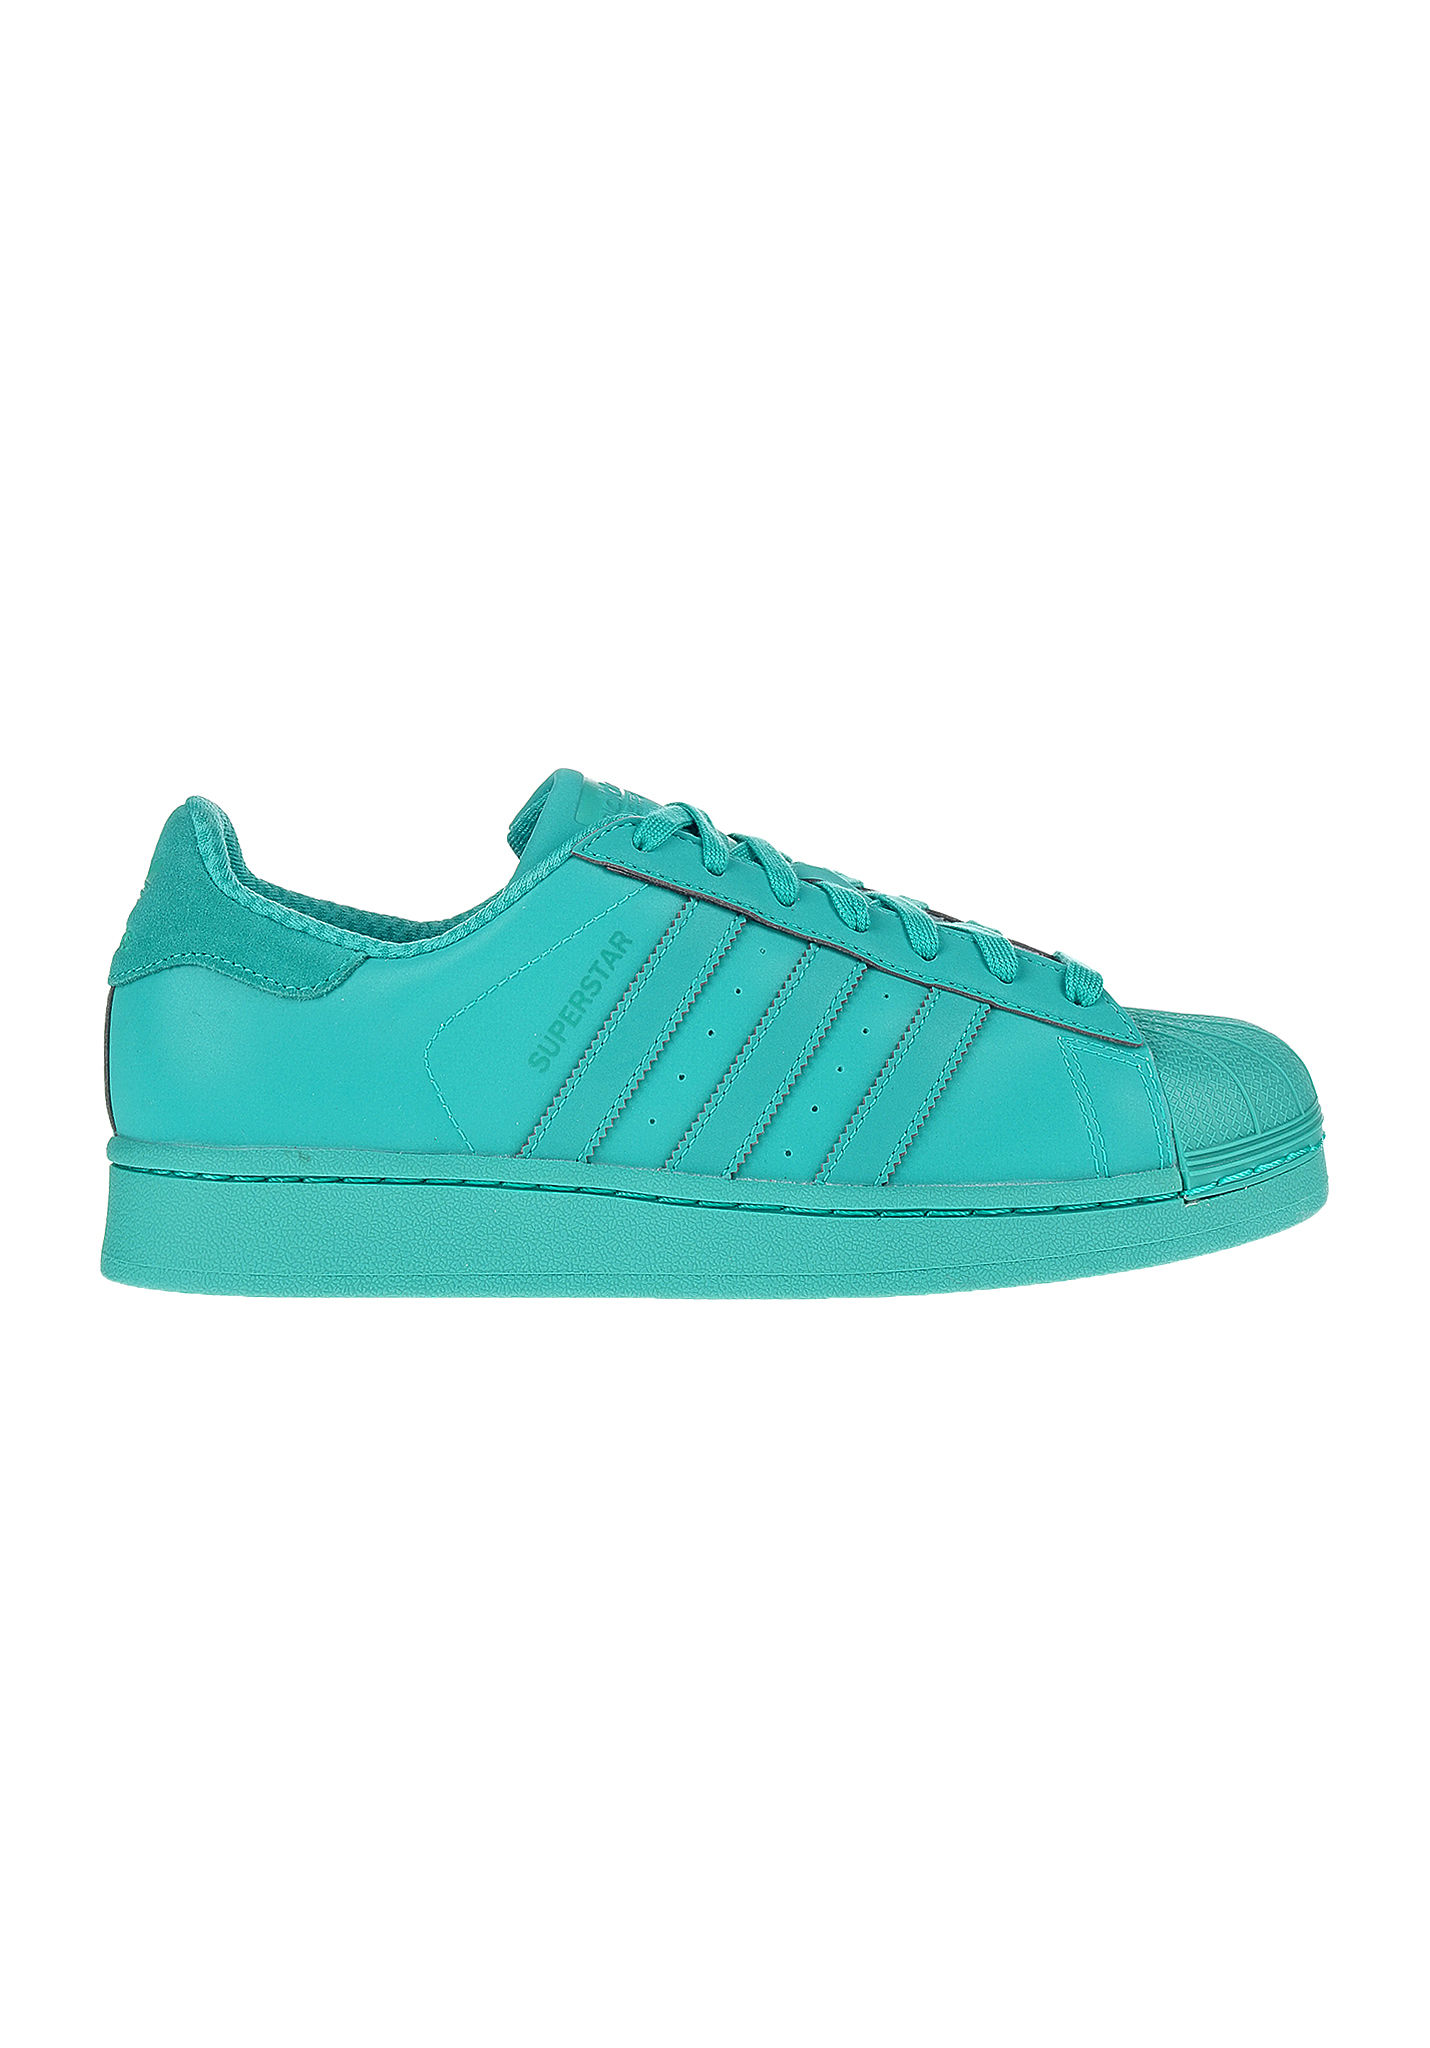 Adidas Superstar In Grün